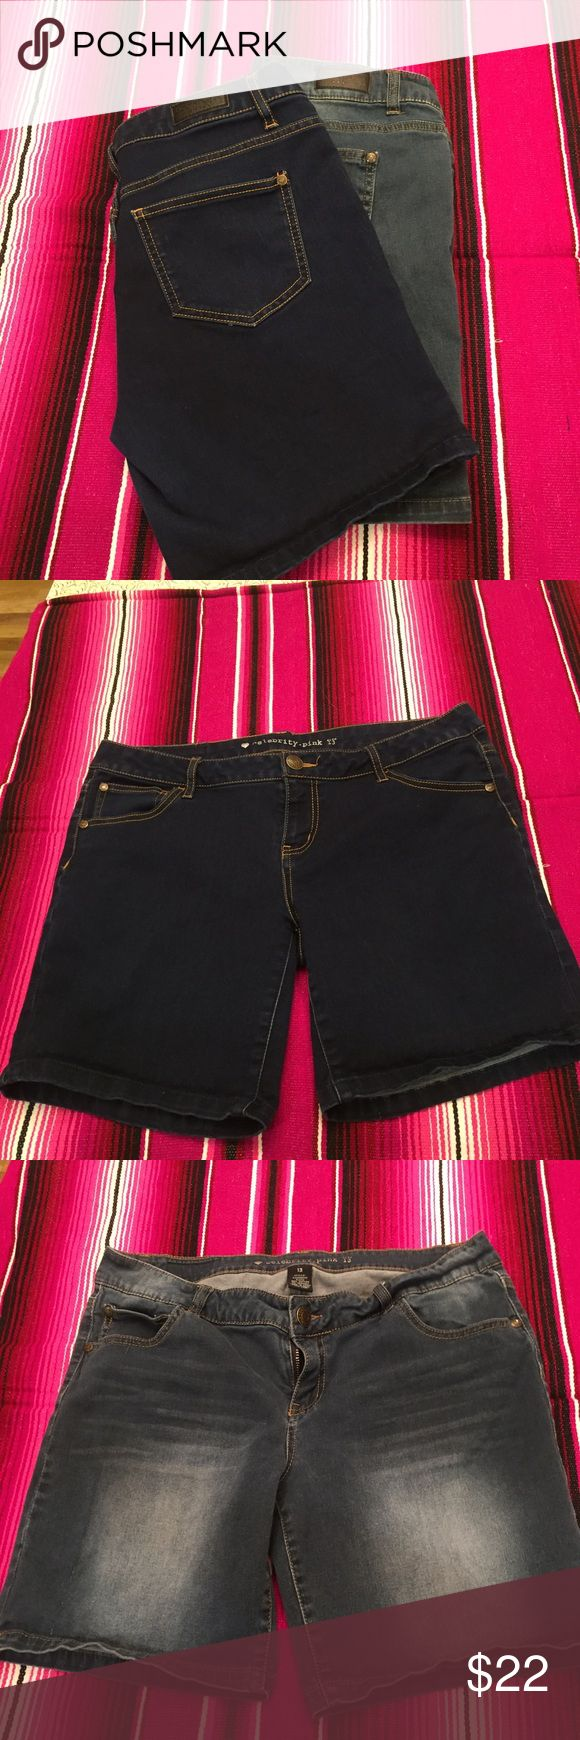 Bundle of Celebrity Pink Brand women's shorts this is for both pairs of these size 13 Bermuda shorts. One dark and one light Denim they have a Great stretch to them. Celebrity Pink Shorts Bermudas